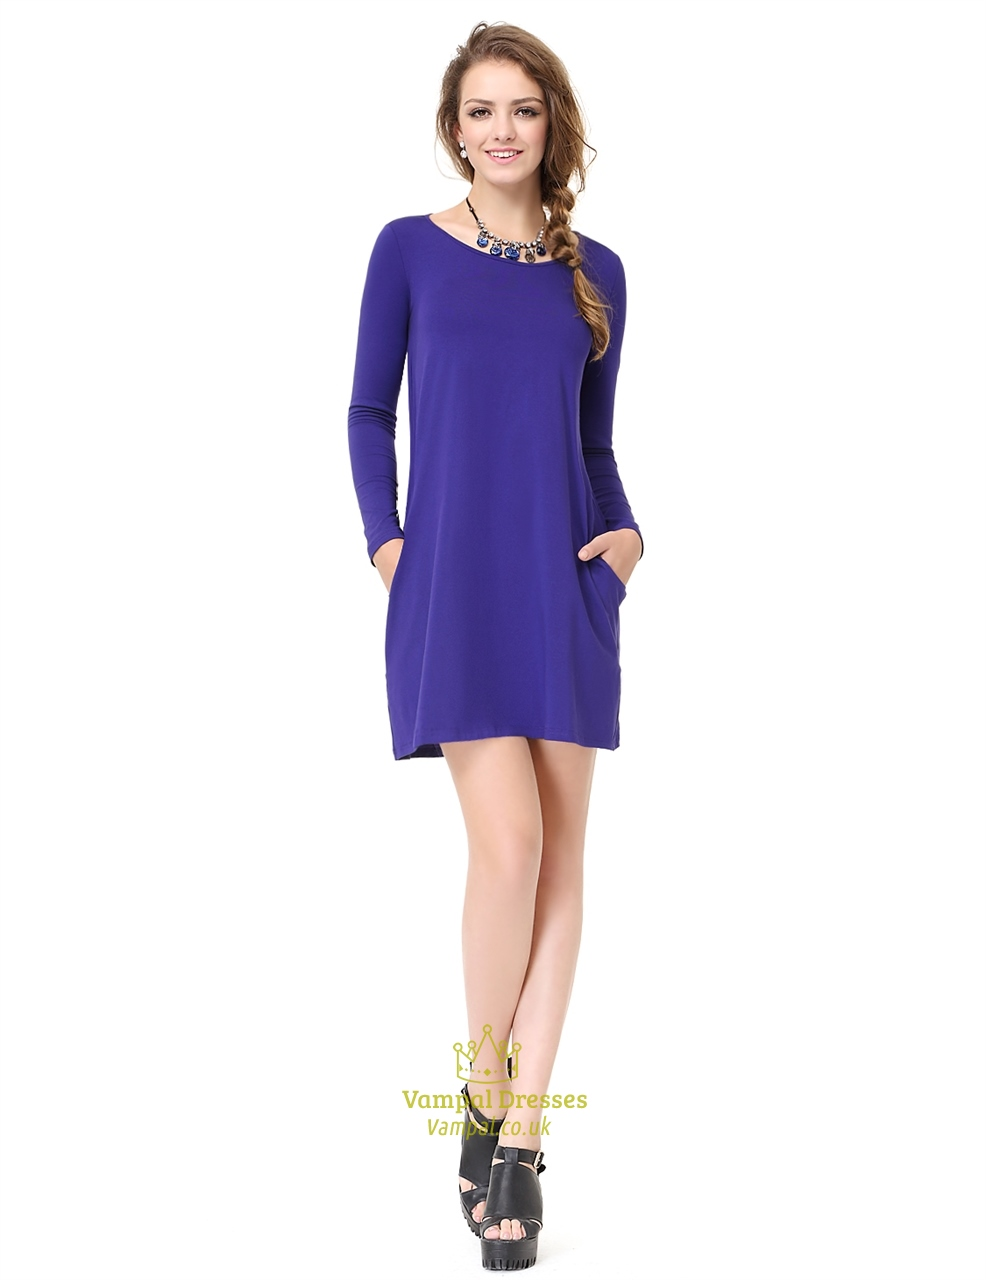 Women 39 s royal blue long sleeve crew neck t shirt dress Women s long sleeve shirt dress